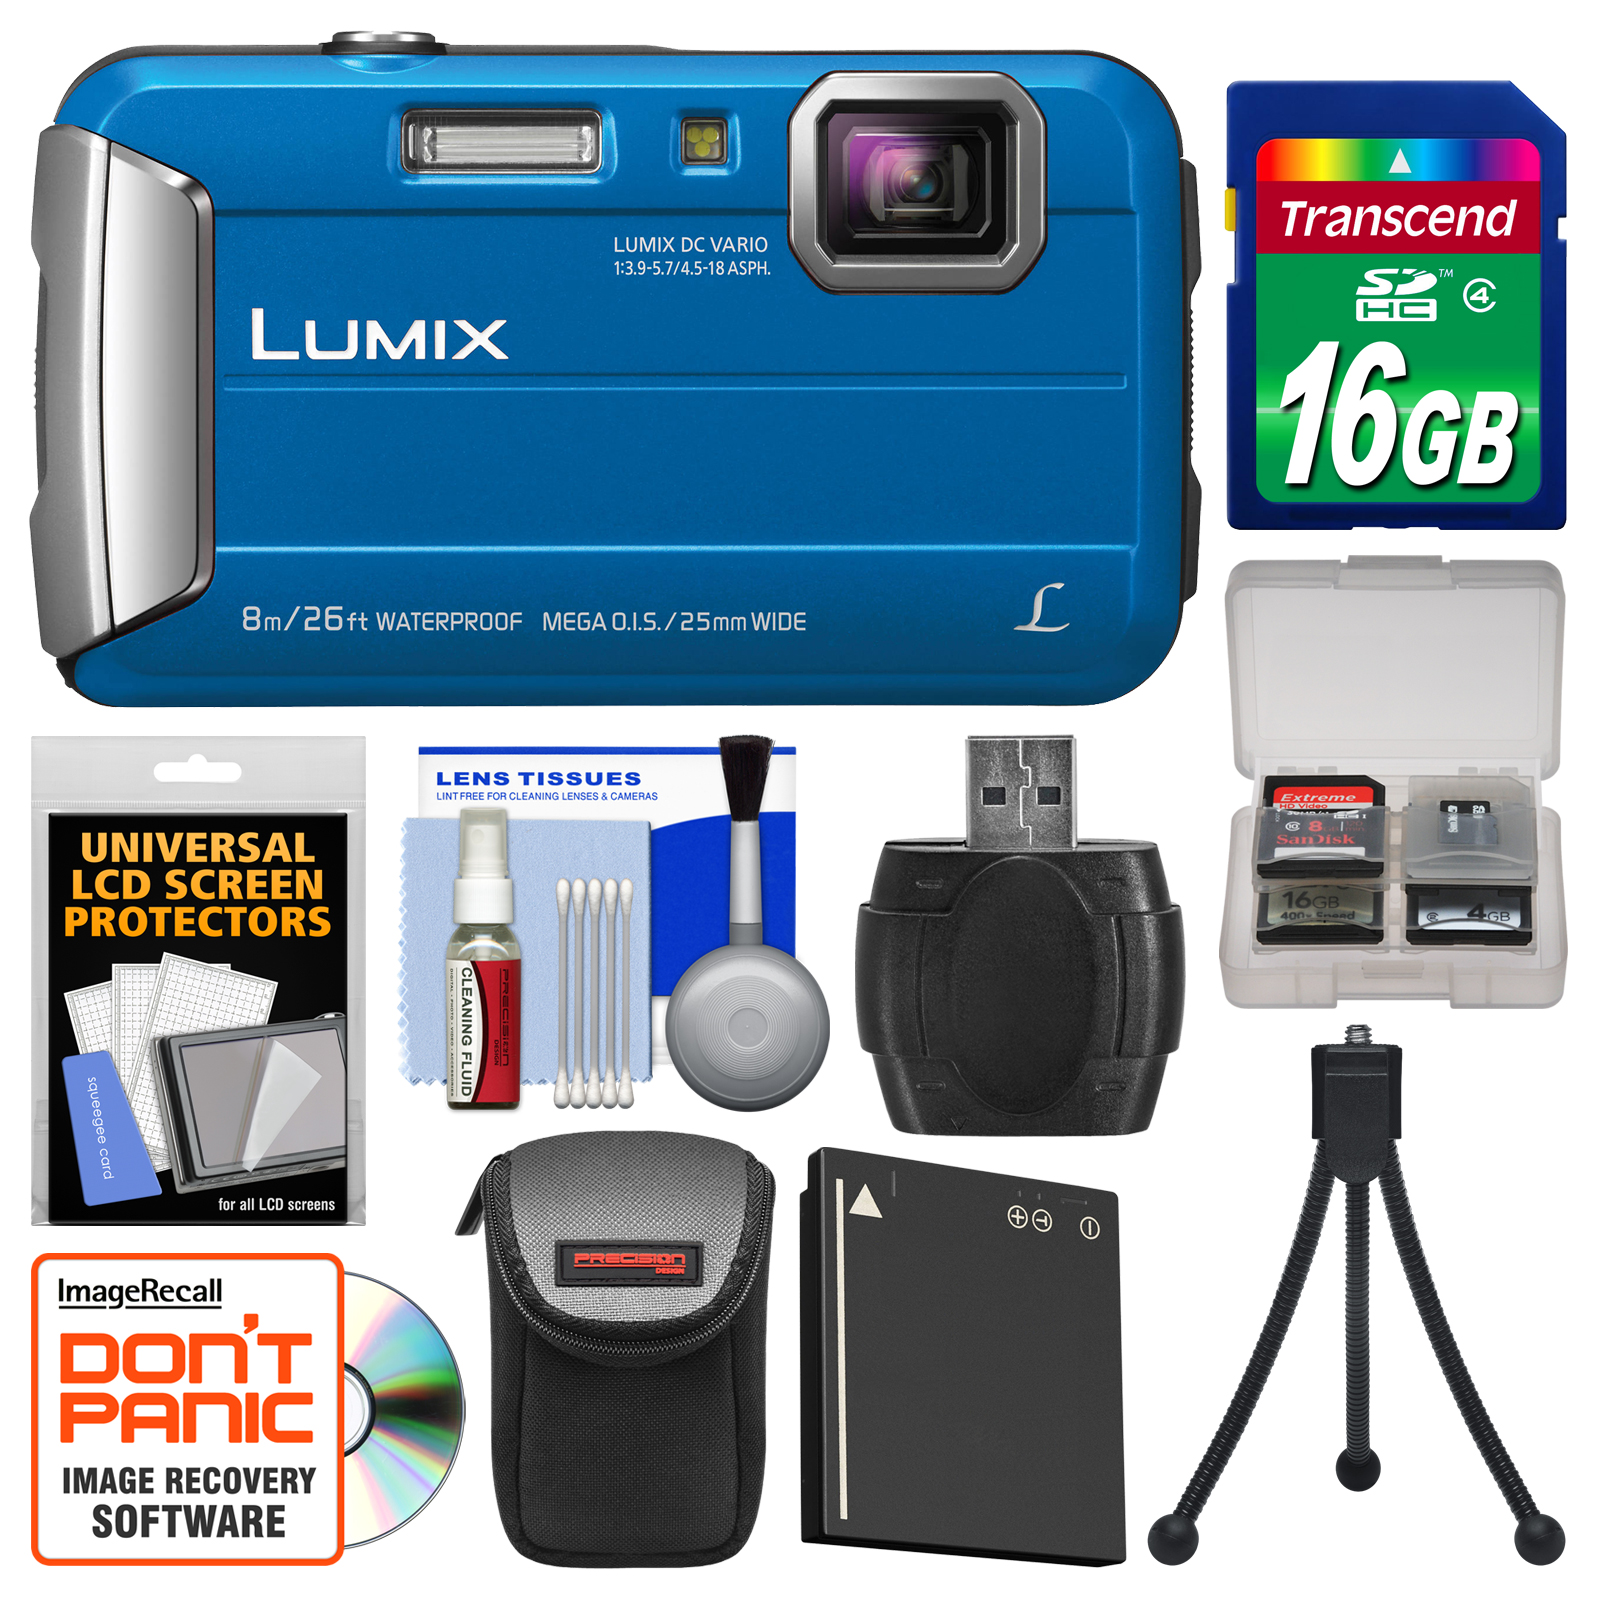 Panasonic Lumix DMC-TS30 Tough Shock & Waterproof Digital Camera (Blue) with 16GB Card +